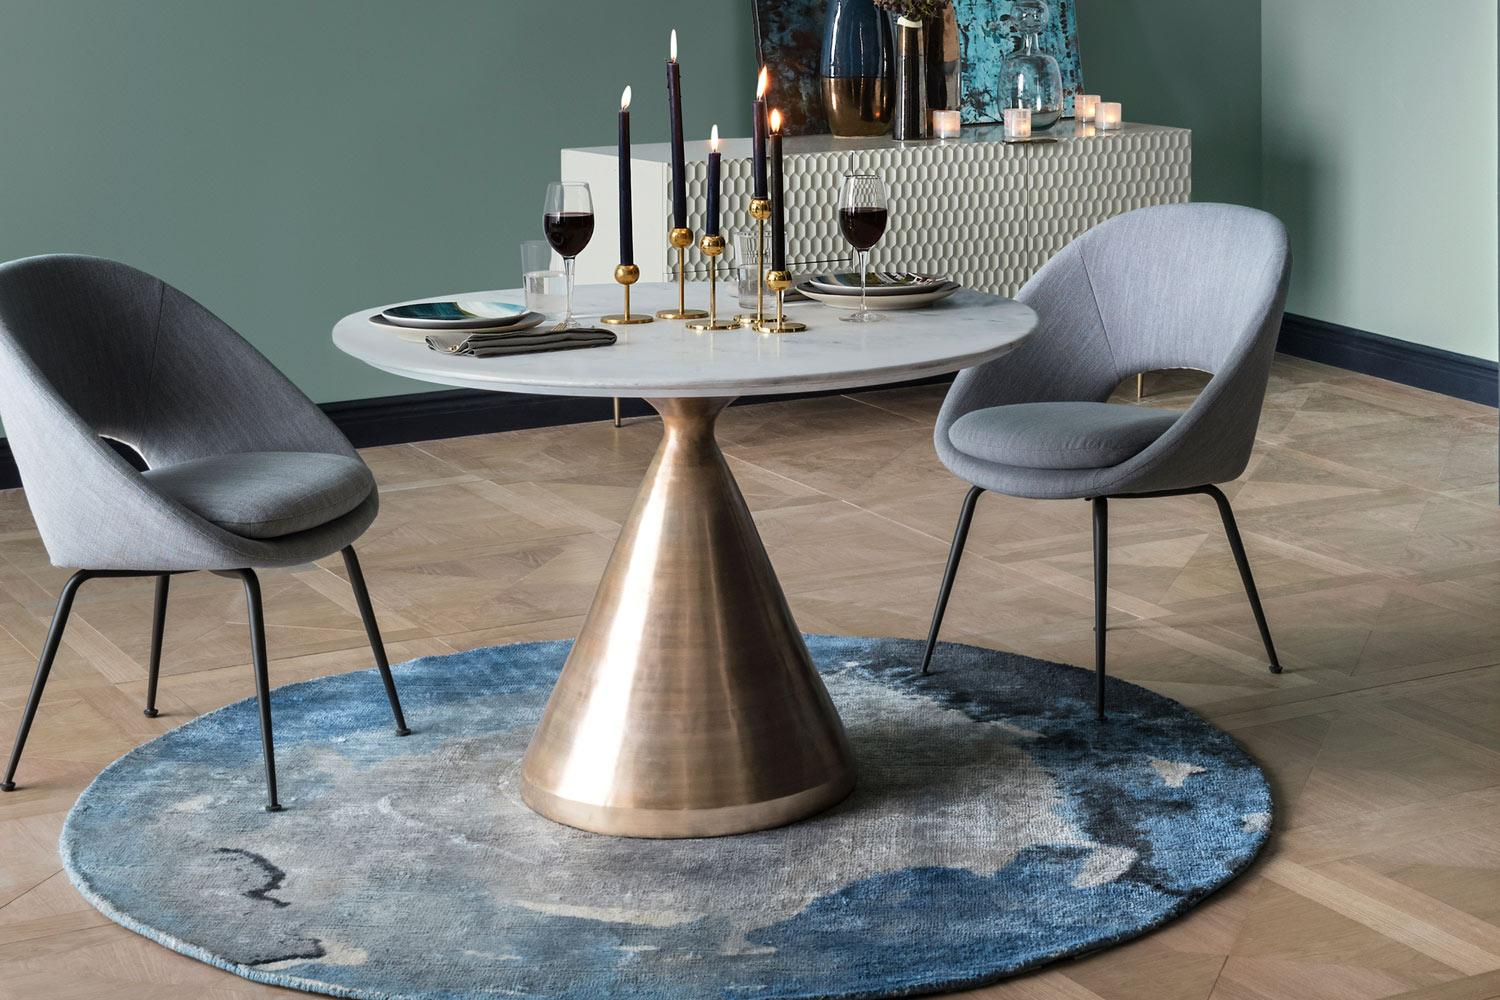 Best Dining Tables: The Best Stylish Dining Room Tables 2019 Pertaining To Most Up To Date Aztec Round Pedestal Dining Tables (View 9 of 25)